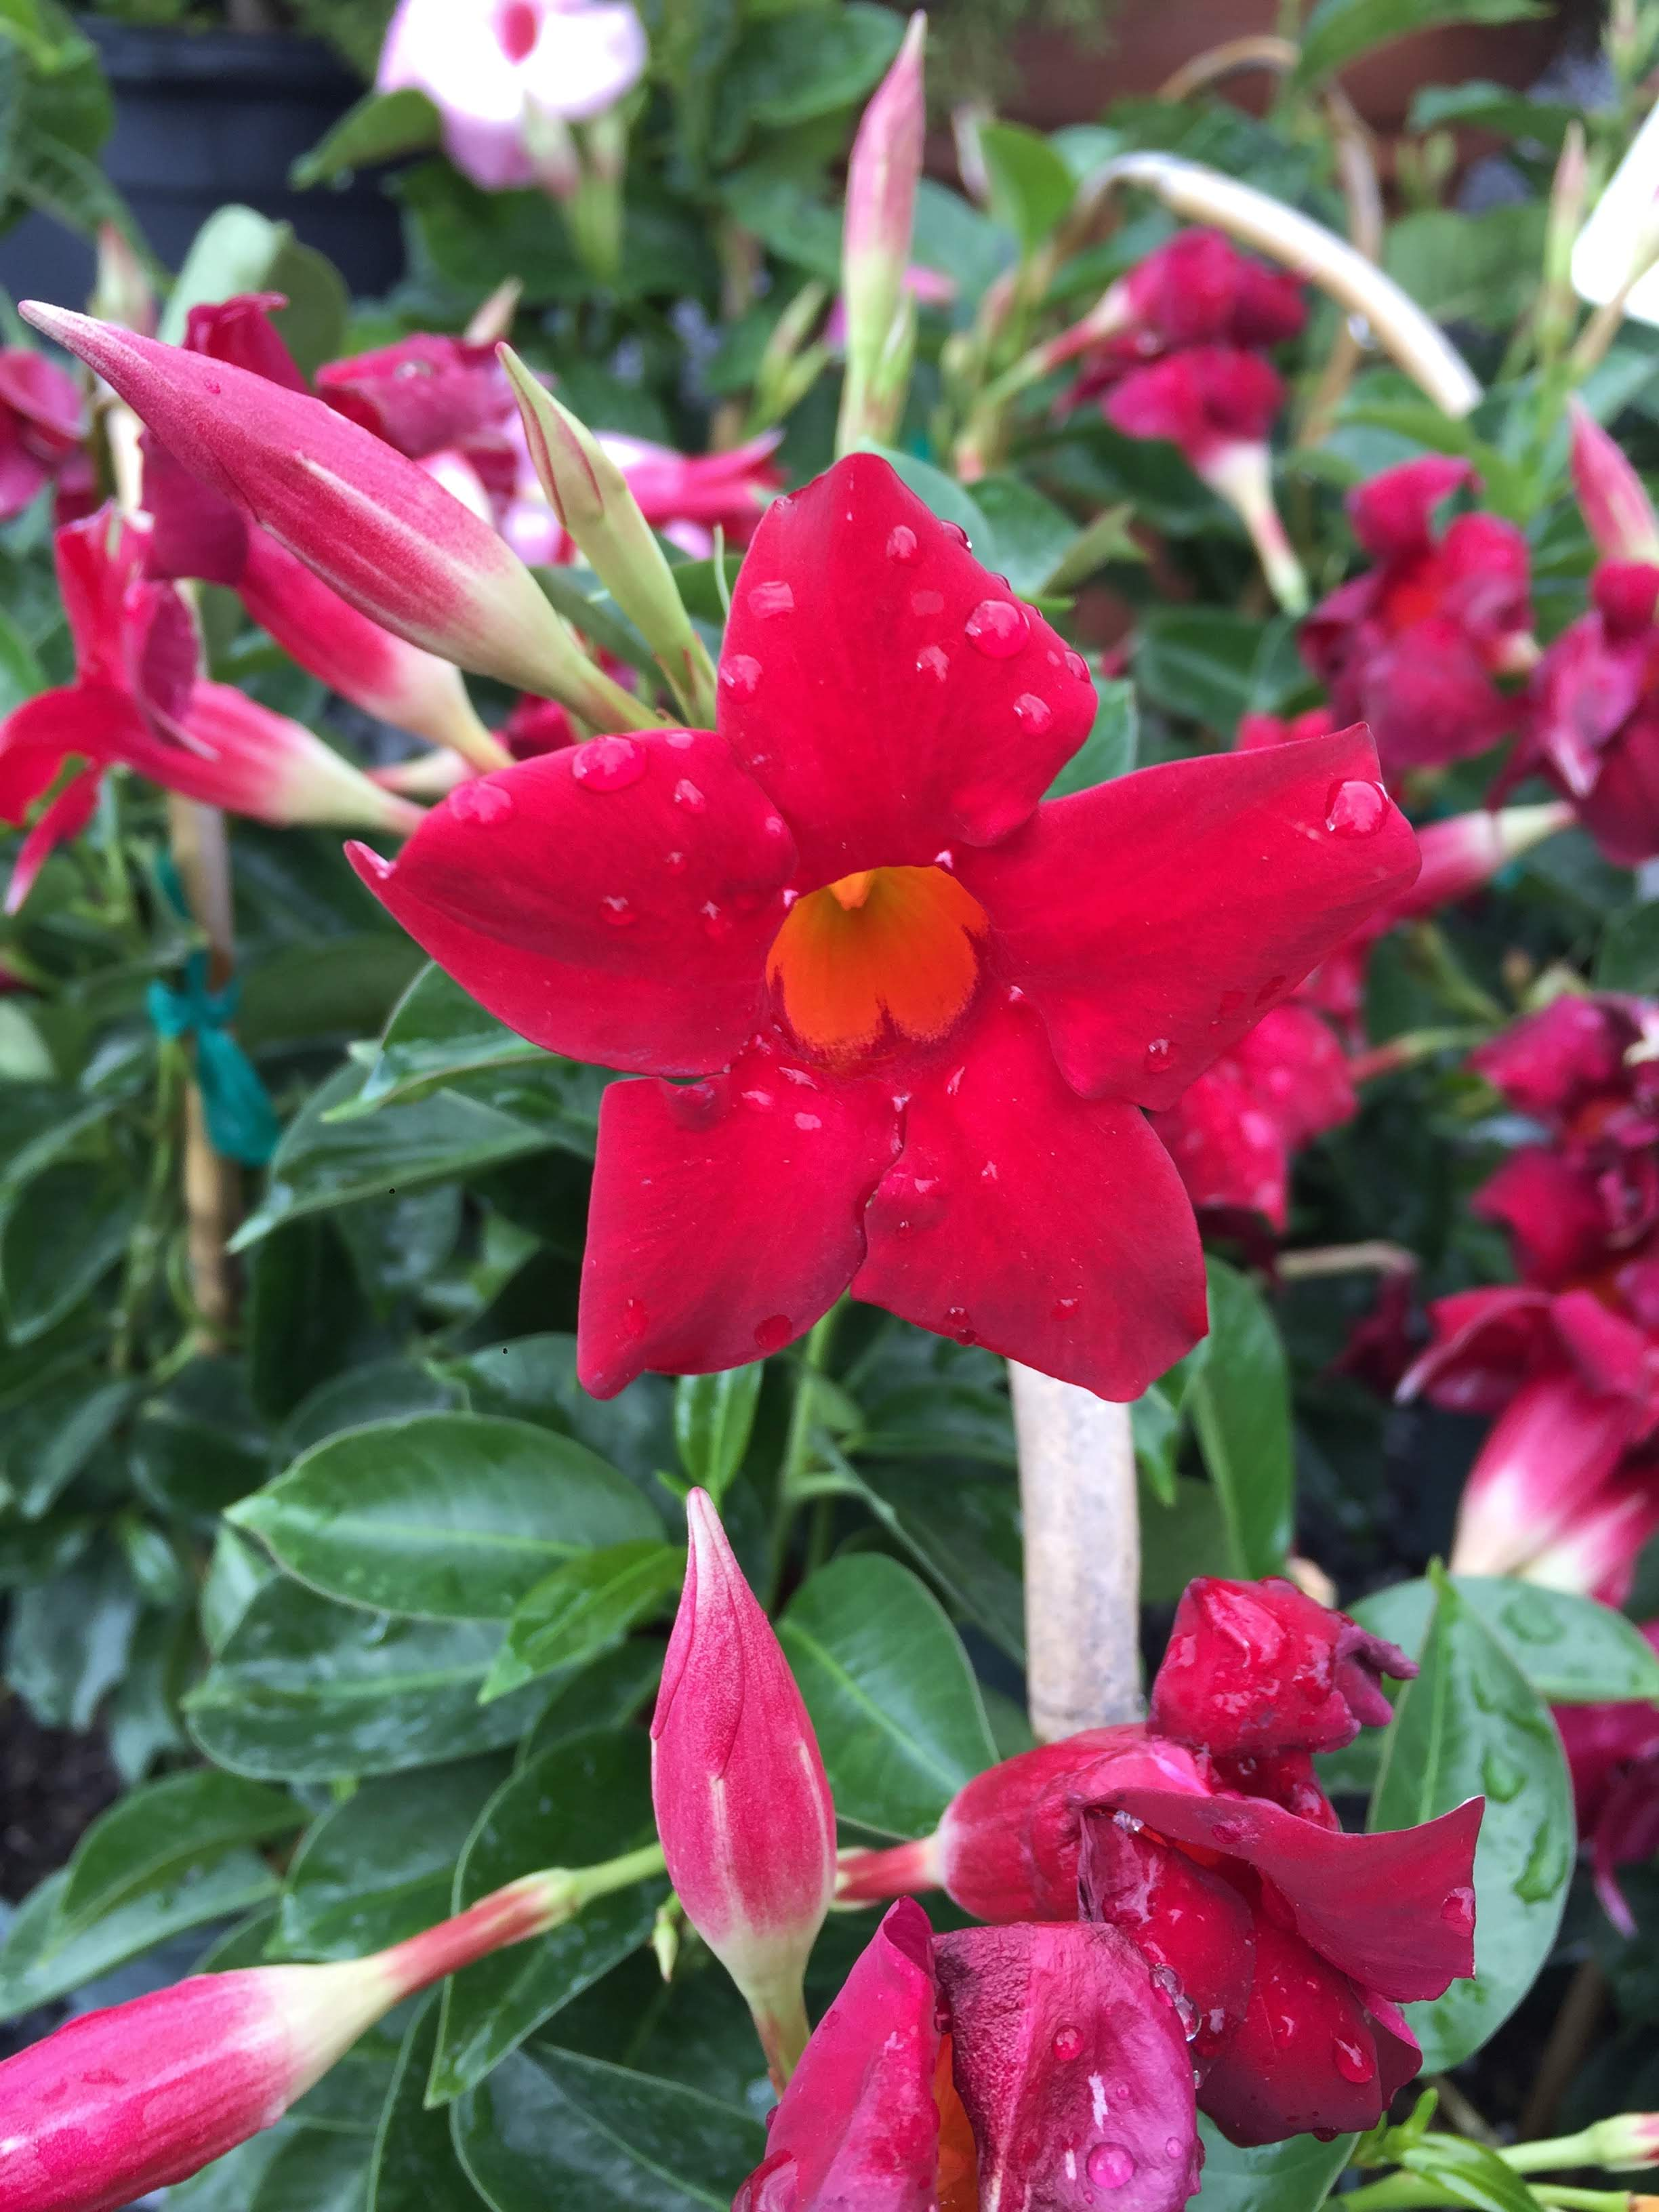 Mandevilla-Tropical flowering vine plant